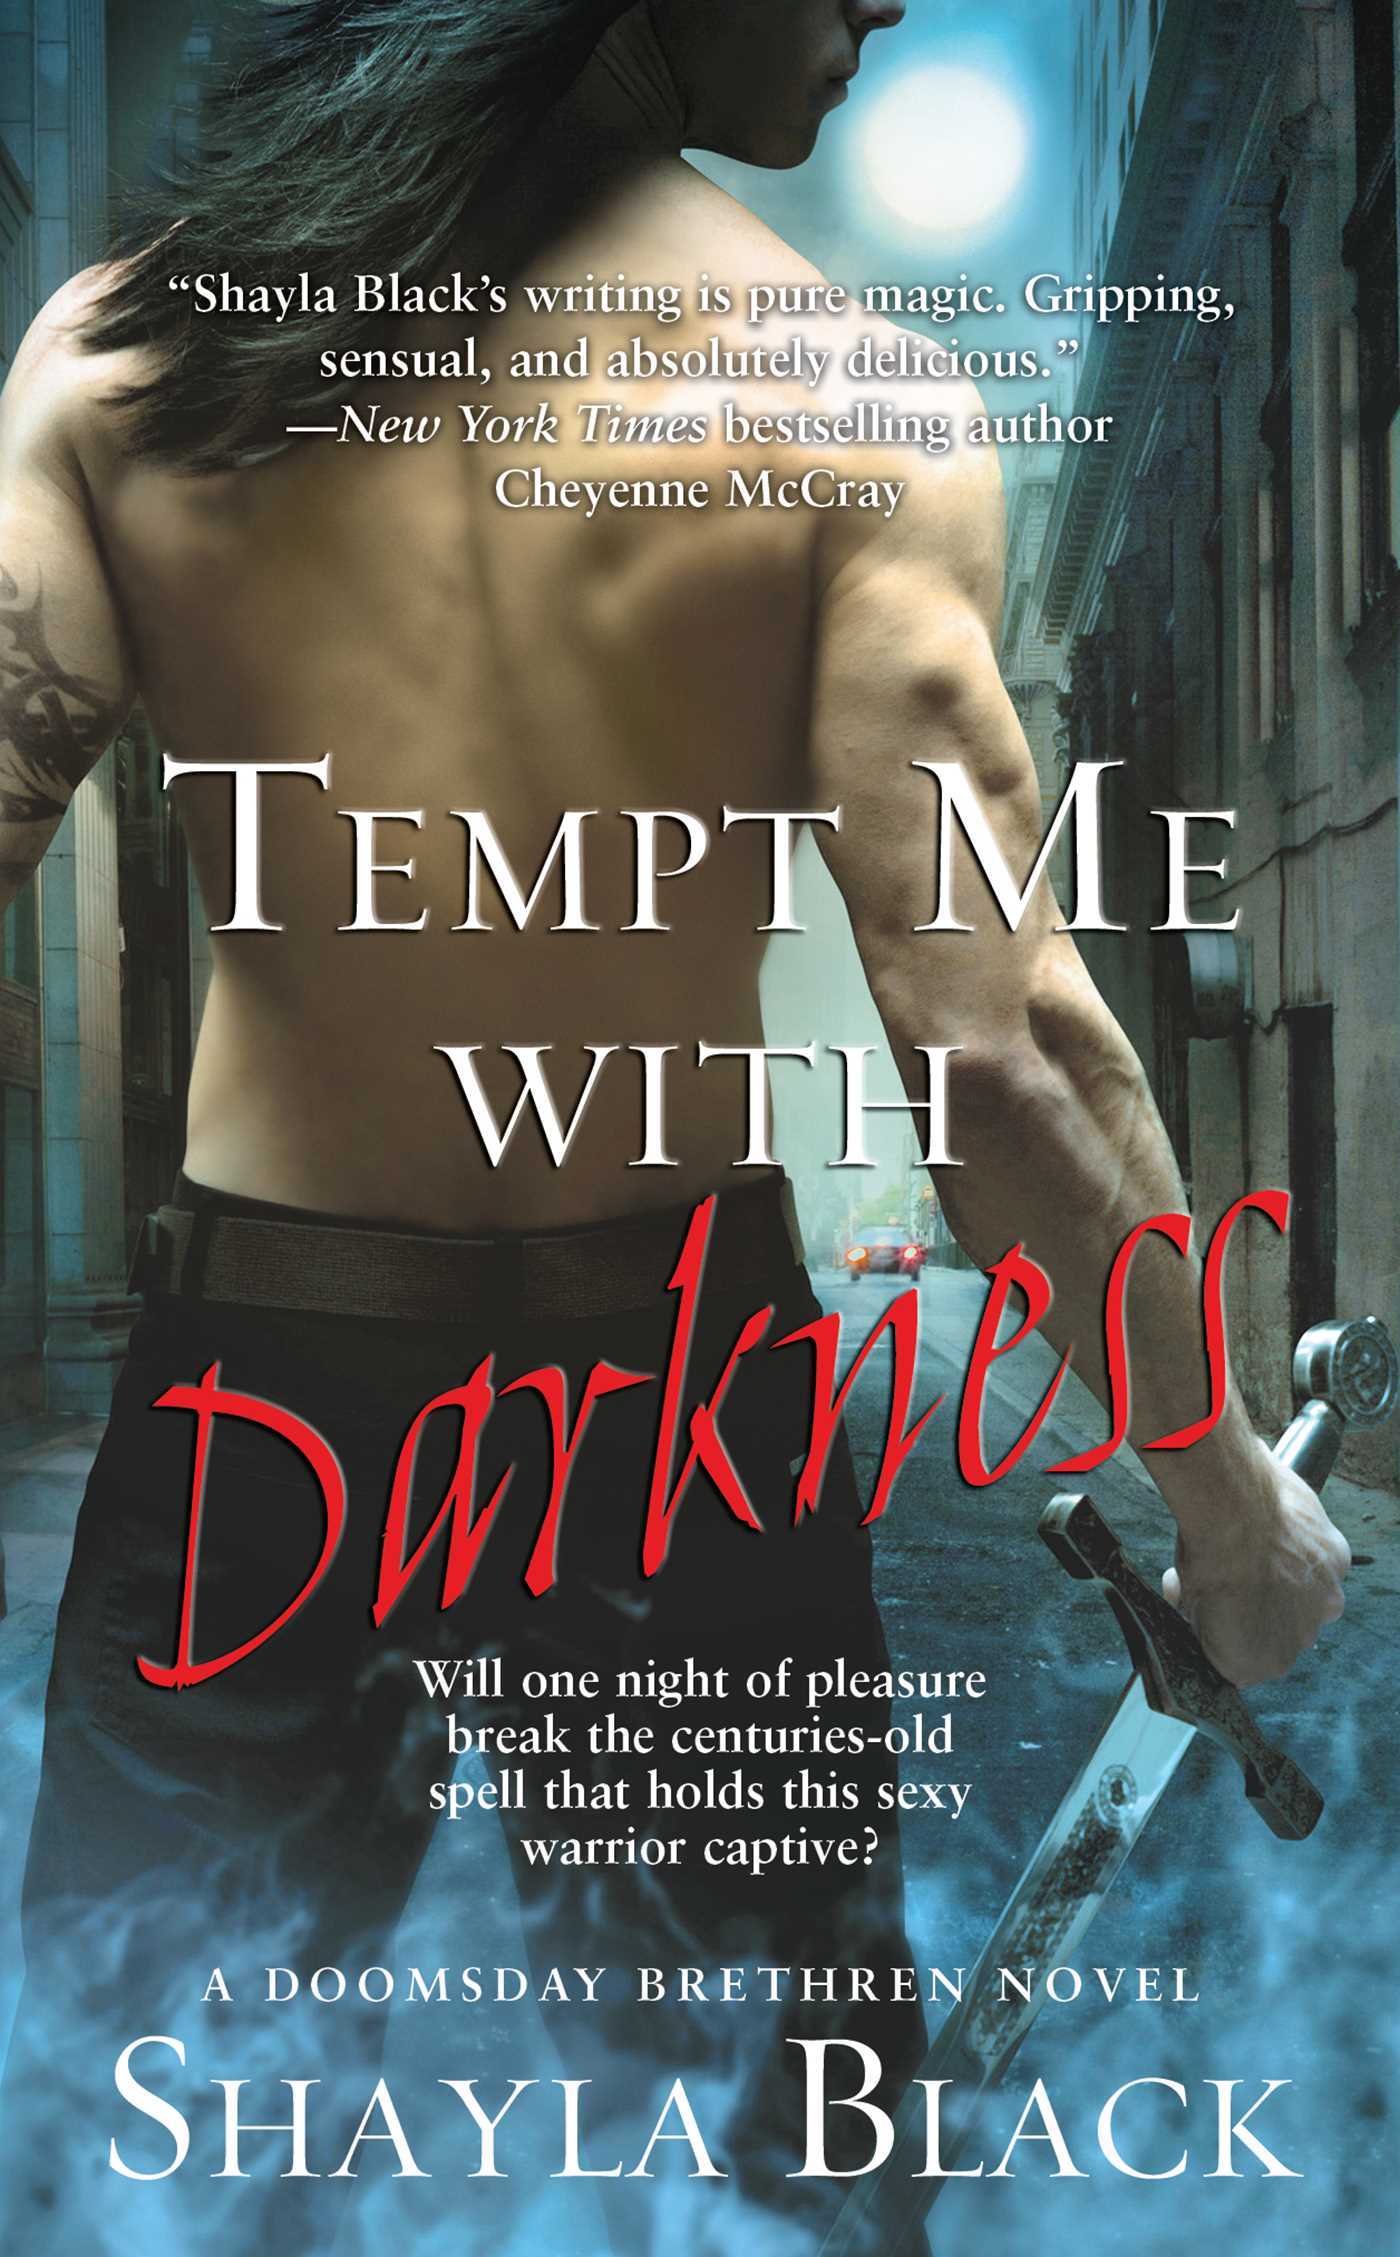 Tempt me with darkness 9781416558583 hr